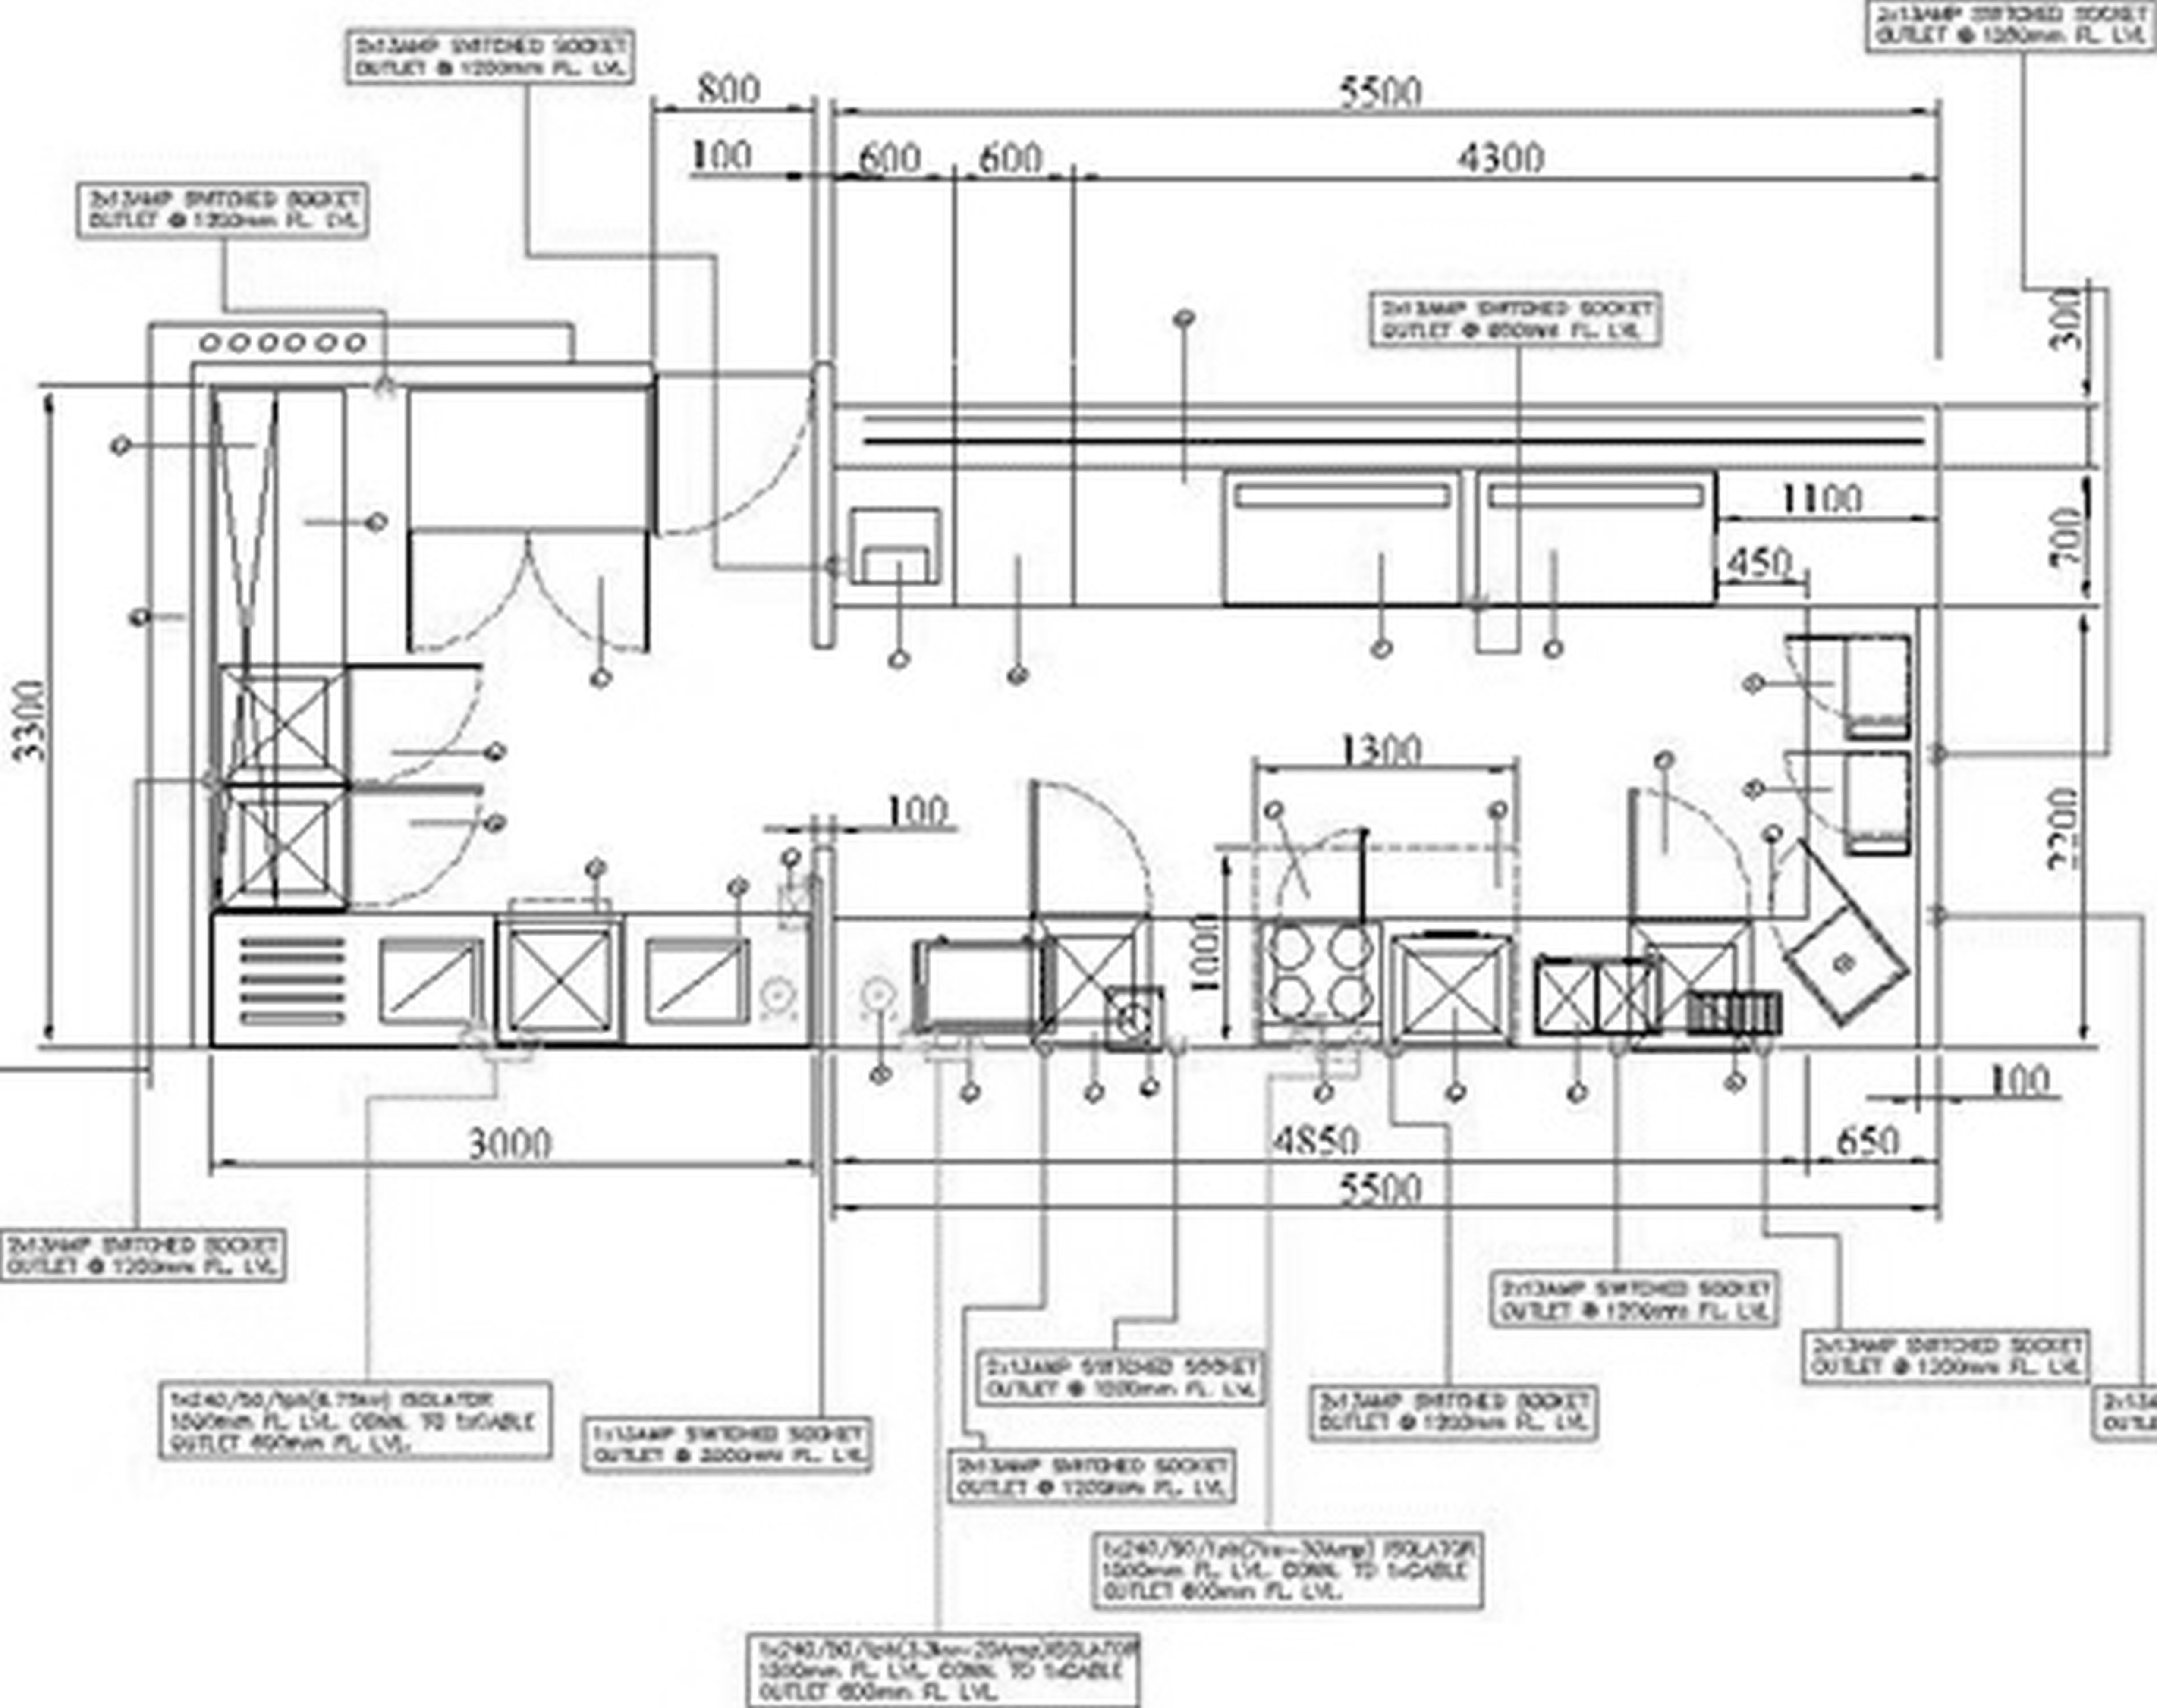 Menards kitchen cabinets layout - Layout Of Commercial Kitchen